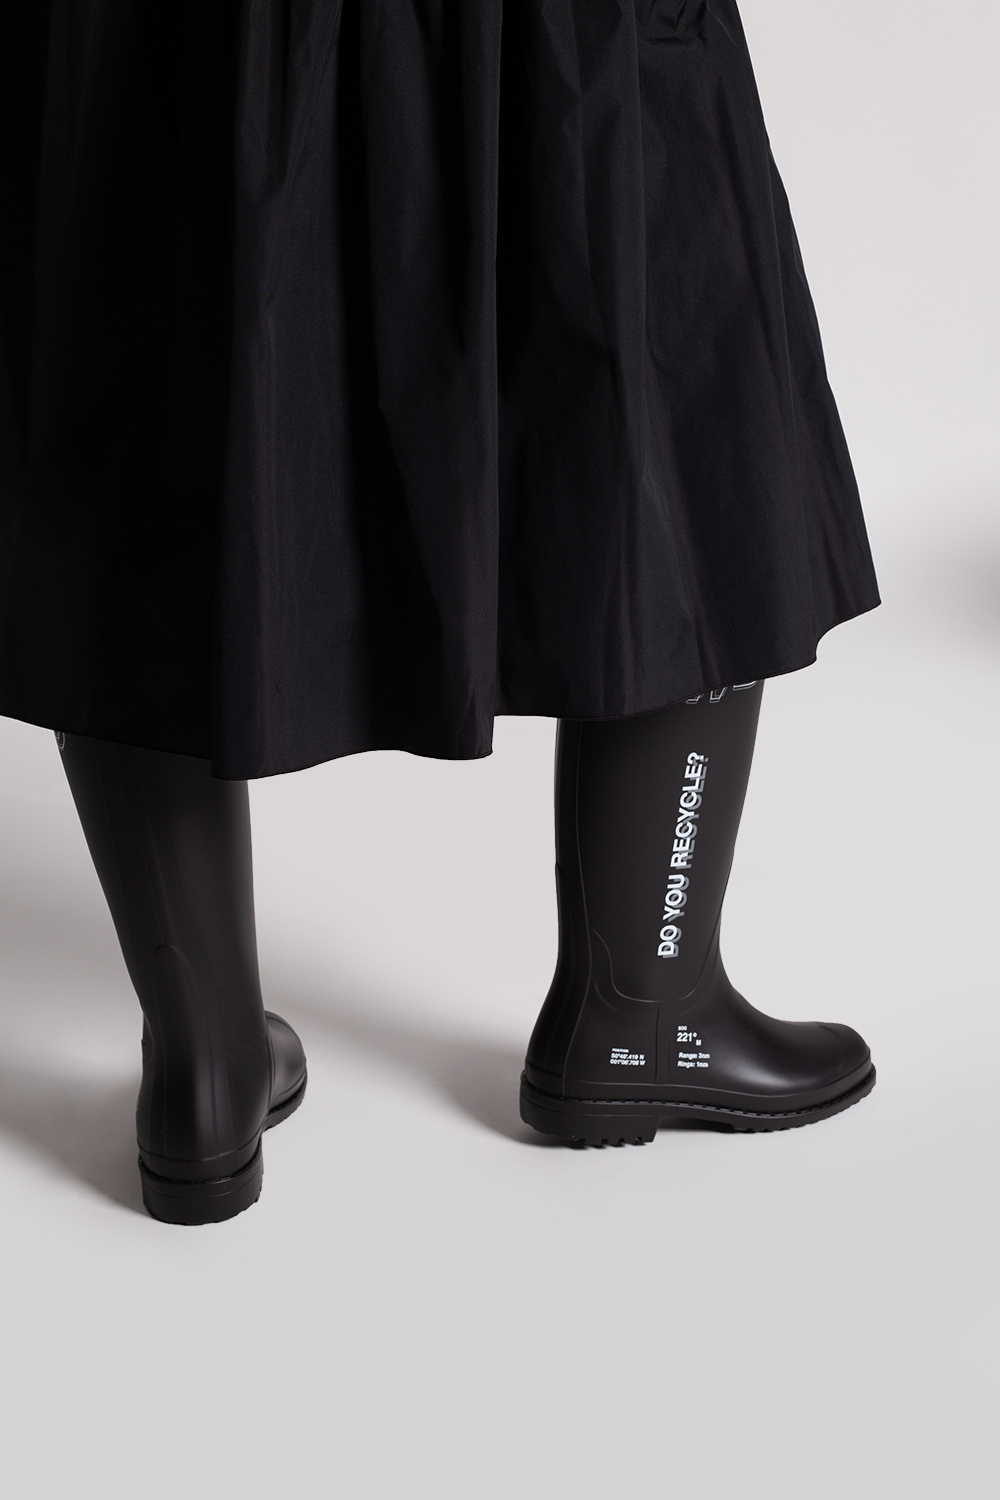 F_WD Rain boots with logo